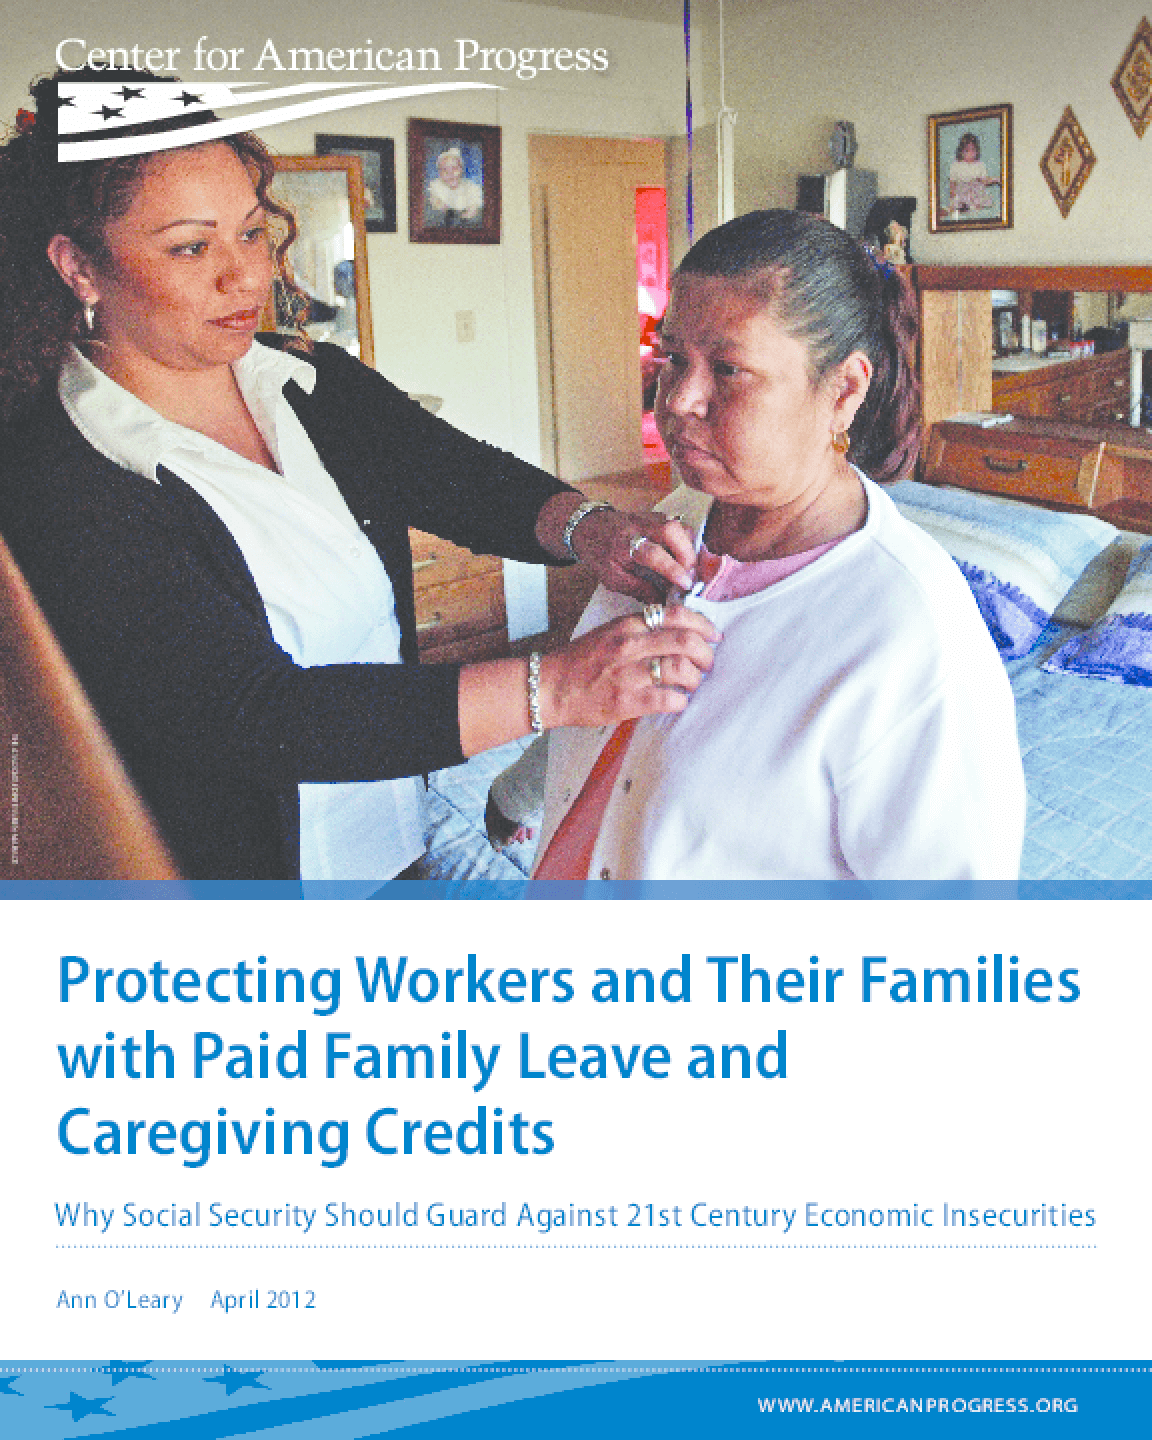 Protecting Workers and Their Families With Paid Family Leave and Caregiving Credits